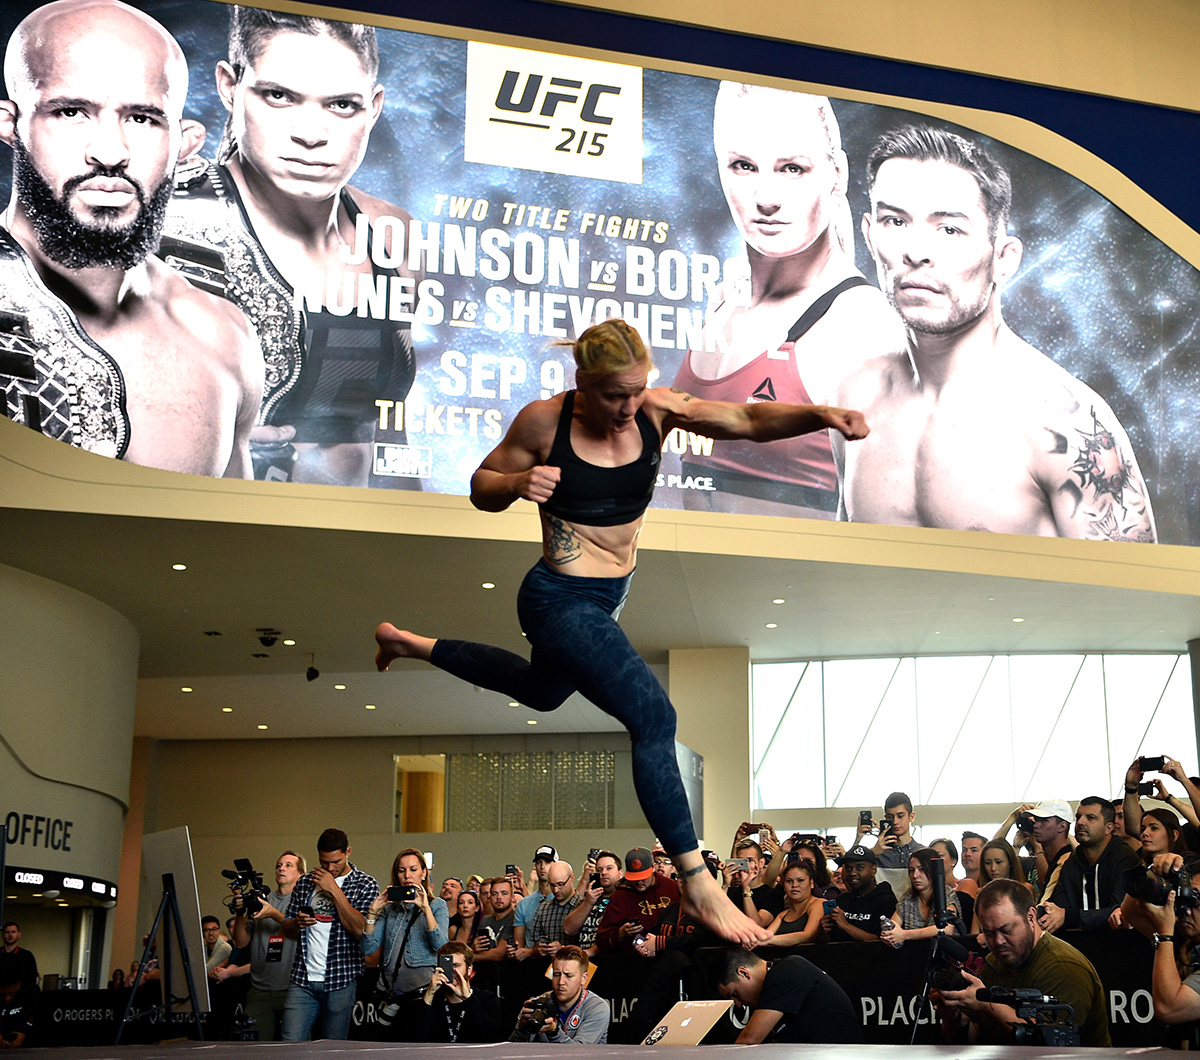 Valentina Shevchenko ufc 215 open workout